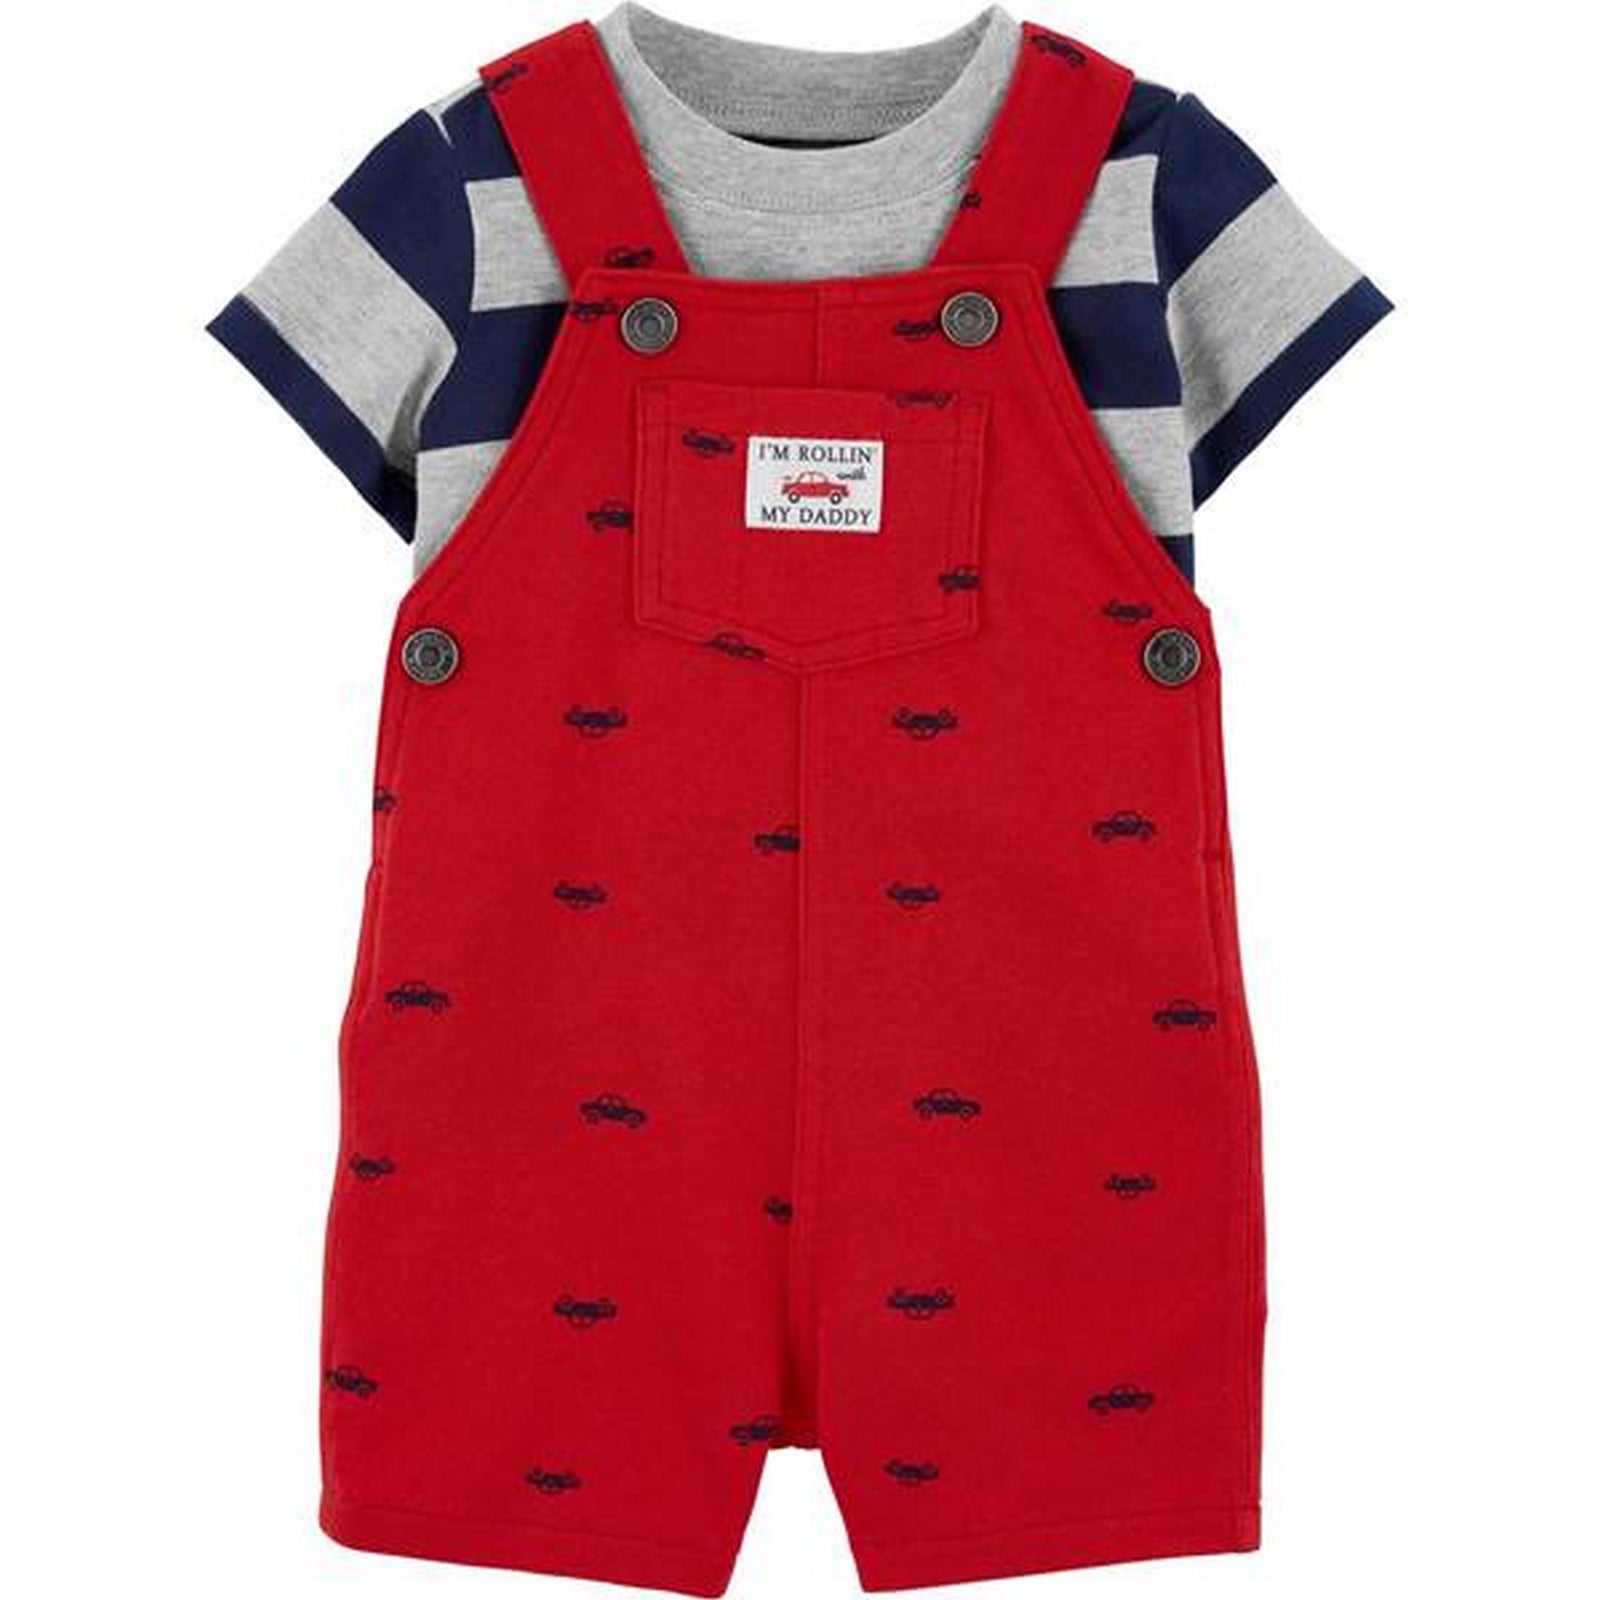 Carter's 2-Piece Striped Tee & Car Shortalls Set 1H361810